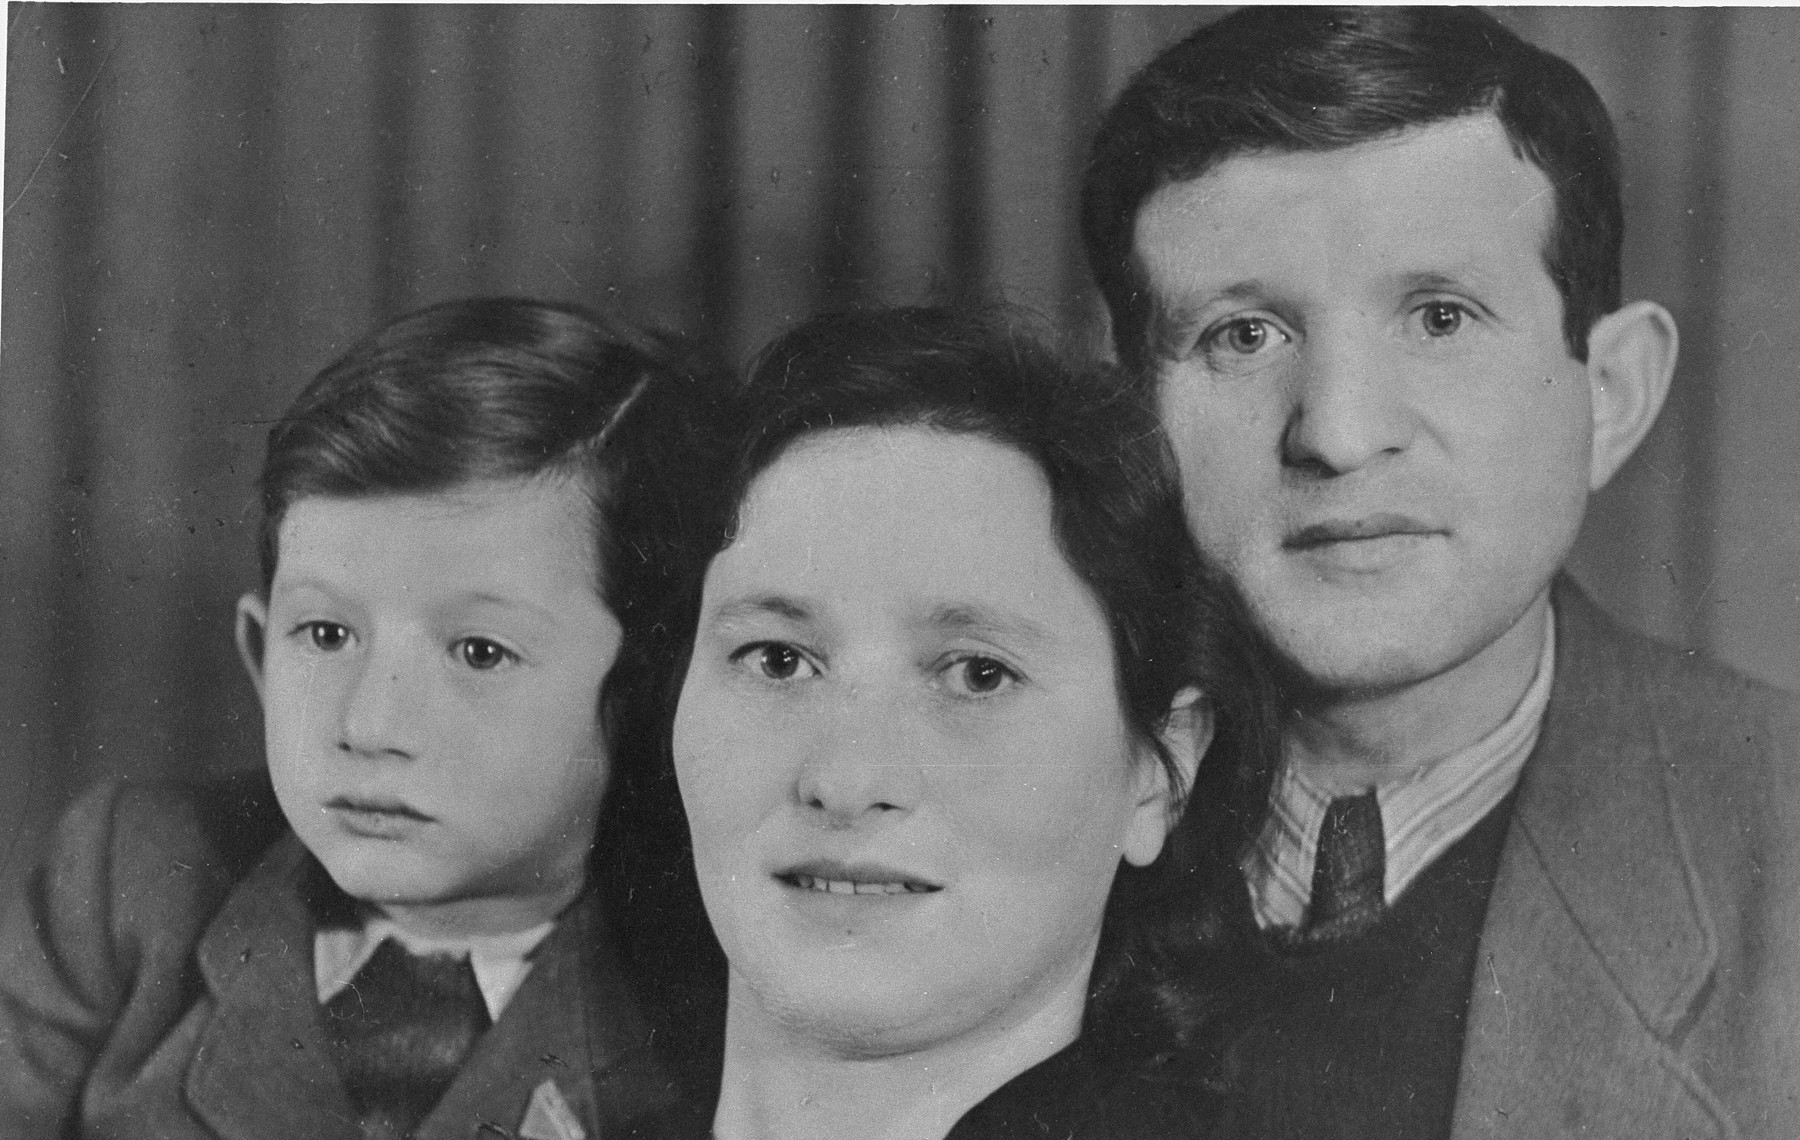 Portrait of a Jewish DP family in postwar Germany.  Pictured are Israel and Esther Schleifstein with their son Joseph.